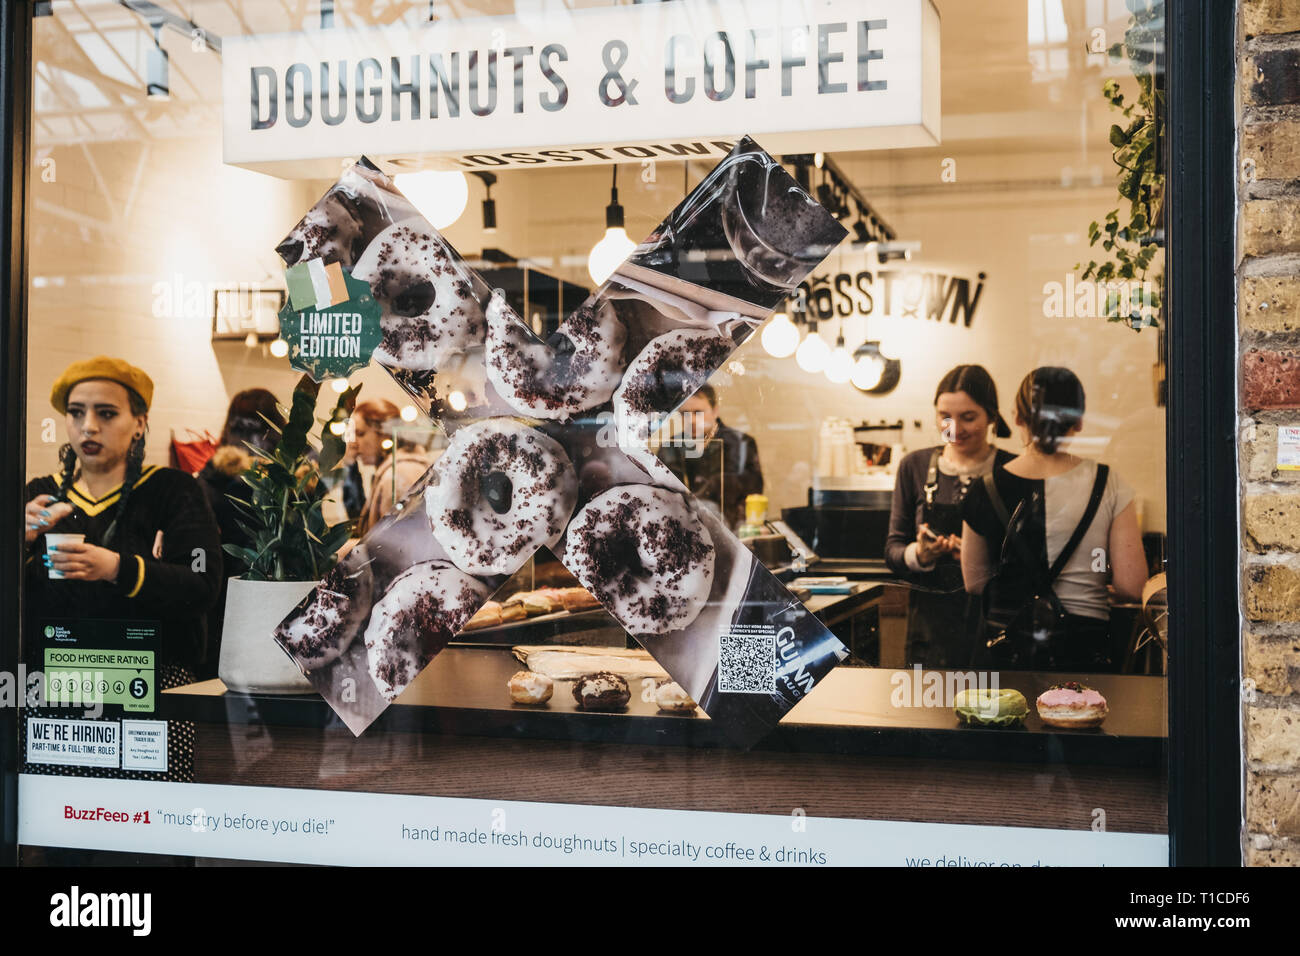 London, UK - March 16, 2019: View through the window of people inside Crosstown doughnuts and coffee cafe in Greenwich Market, the only market in Lond - Stock Image